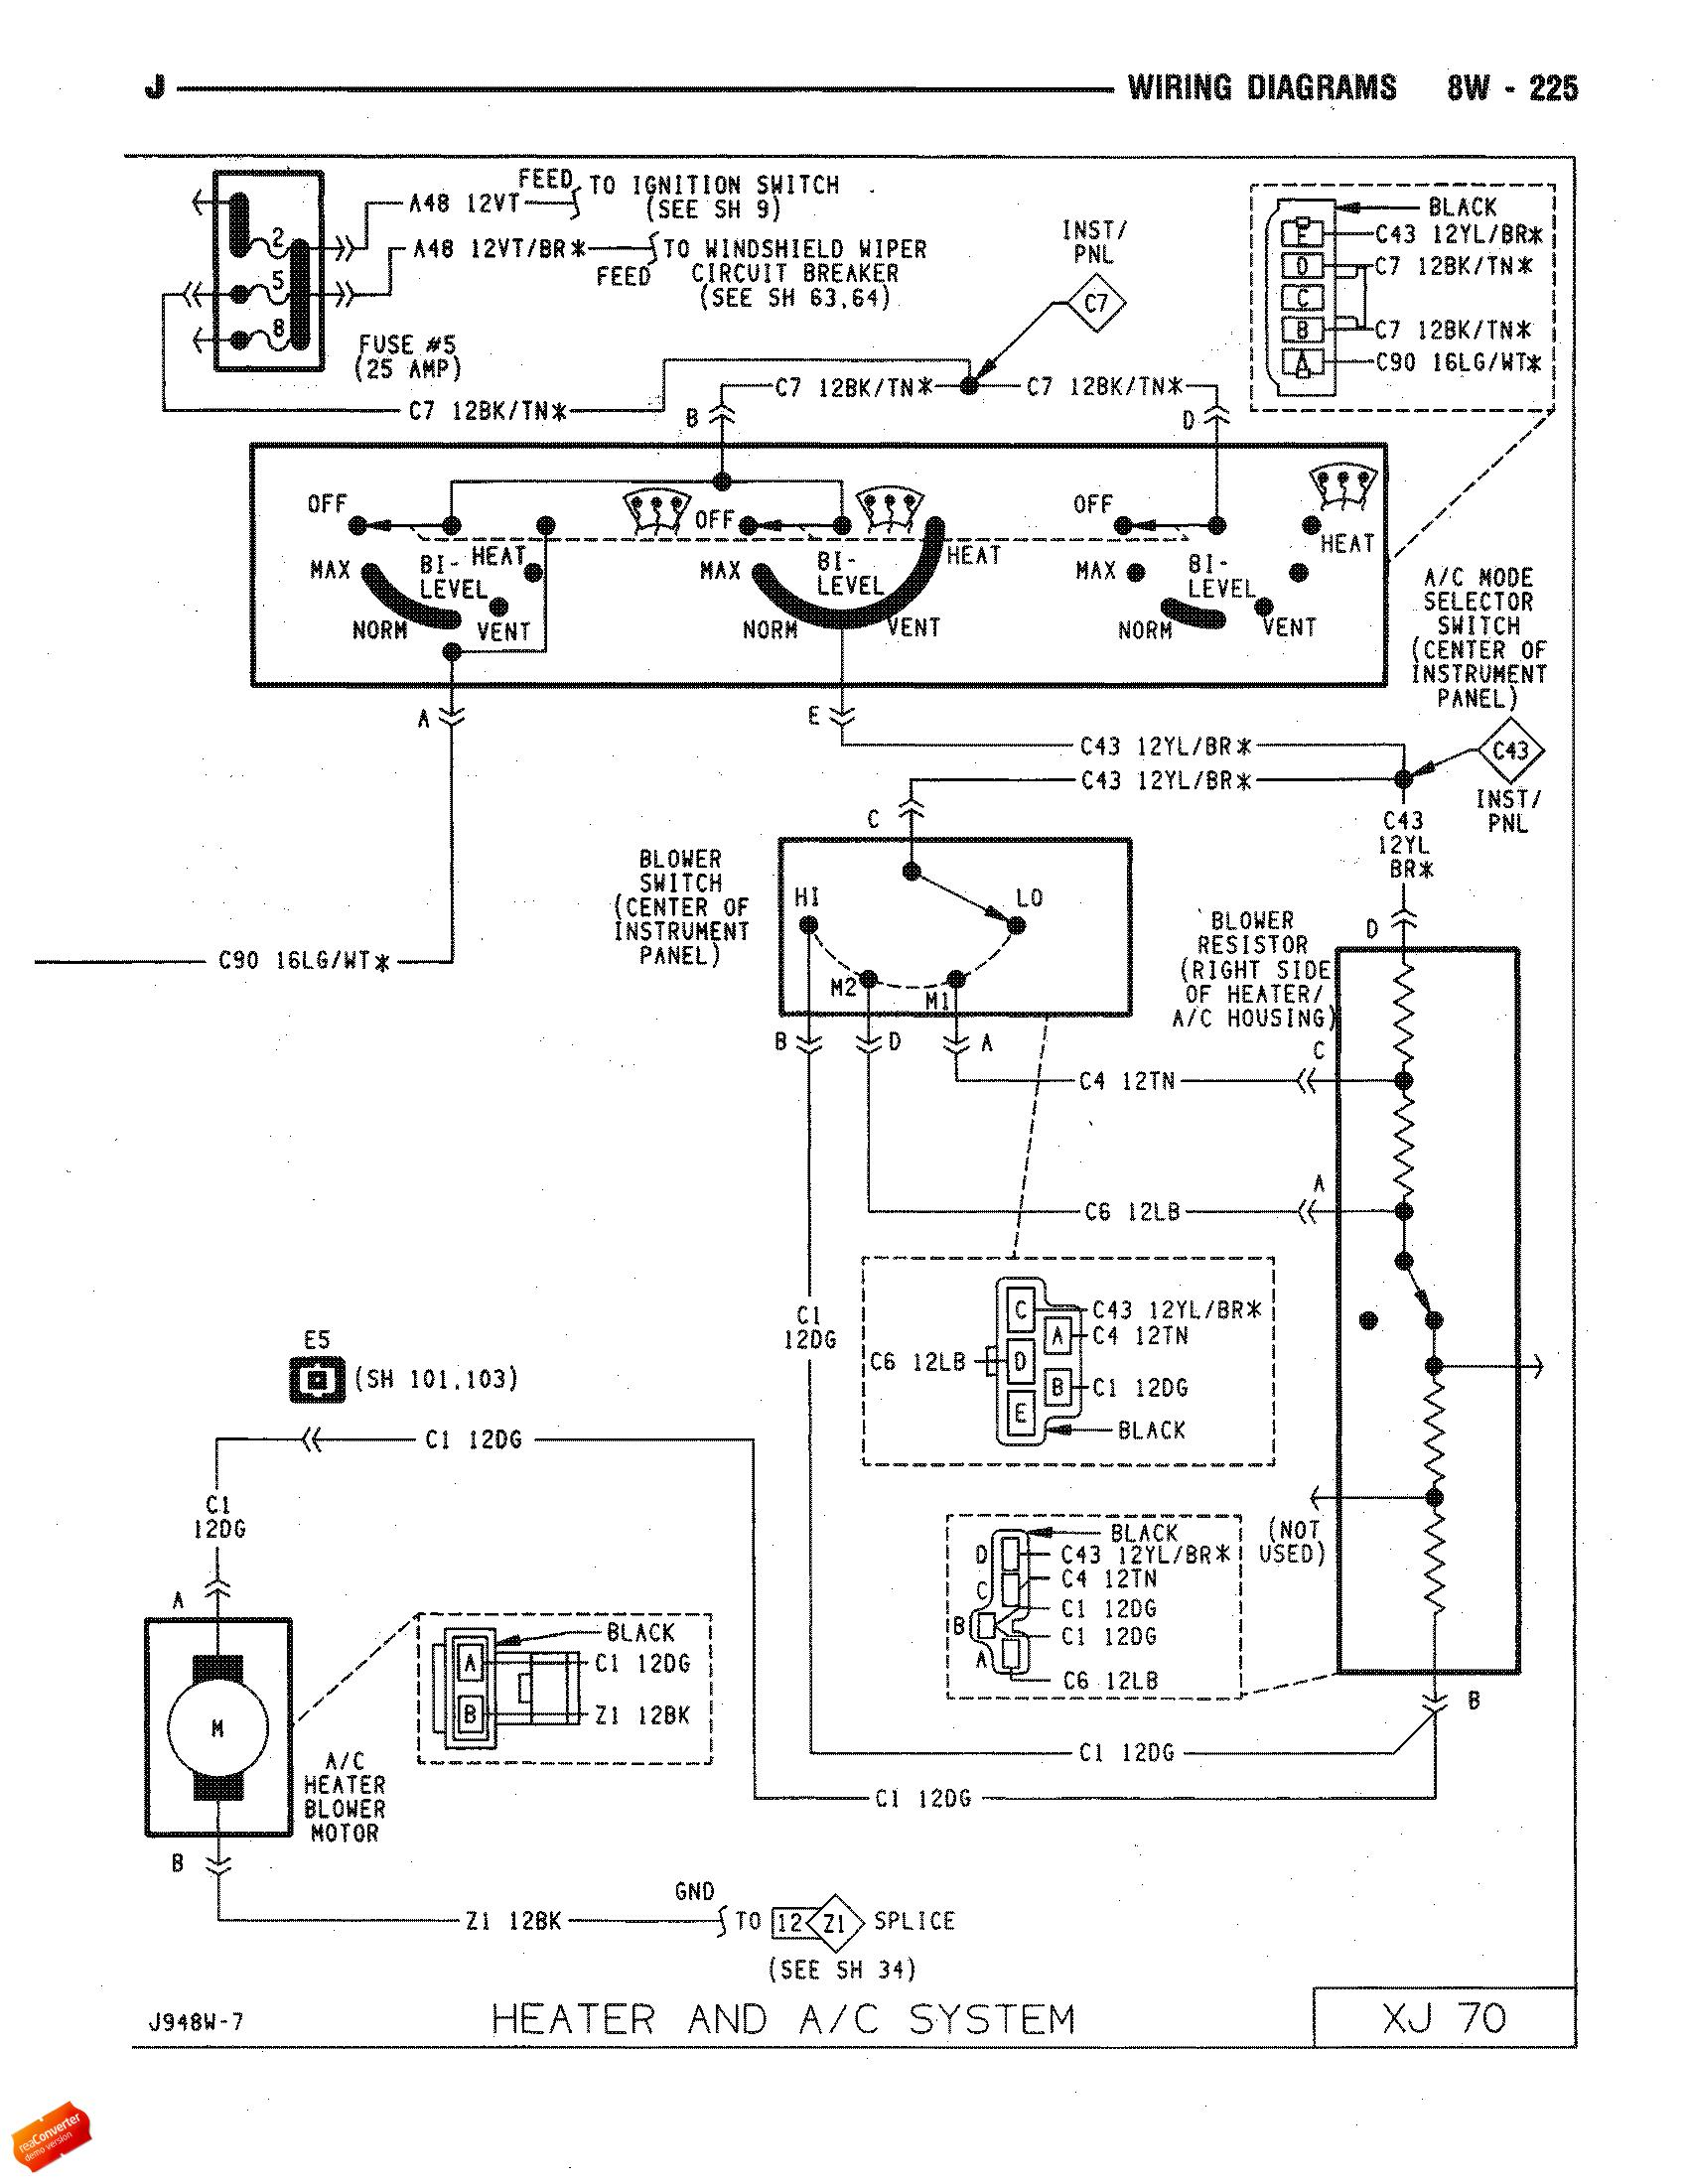 hight resolution of blower motor relay location jeep cherokee forum 94 nissan sentra diagram 94 jeep cherokee heater diagram